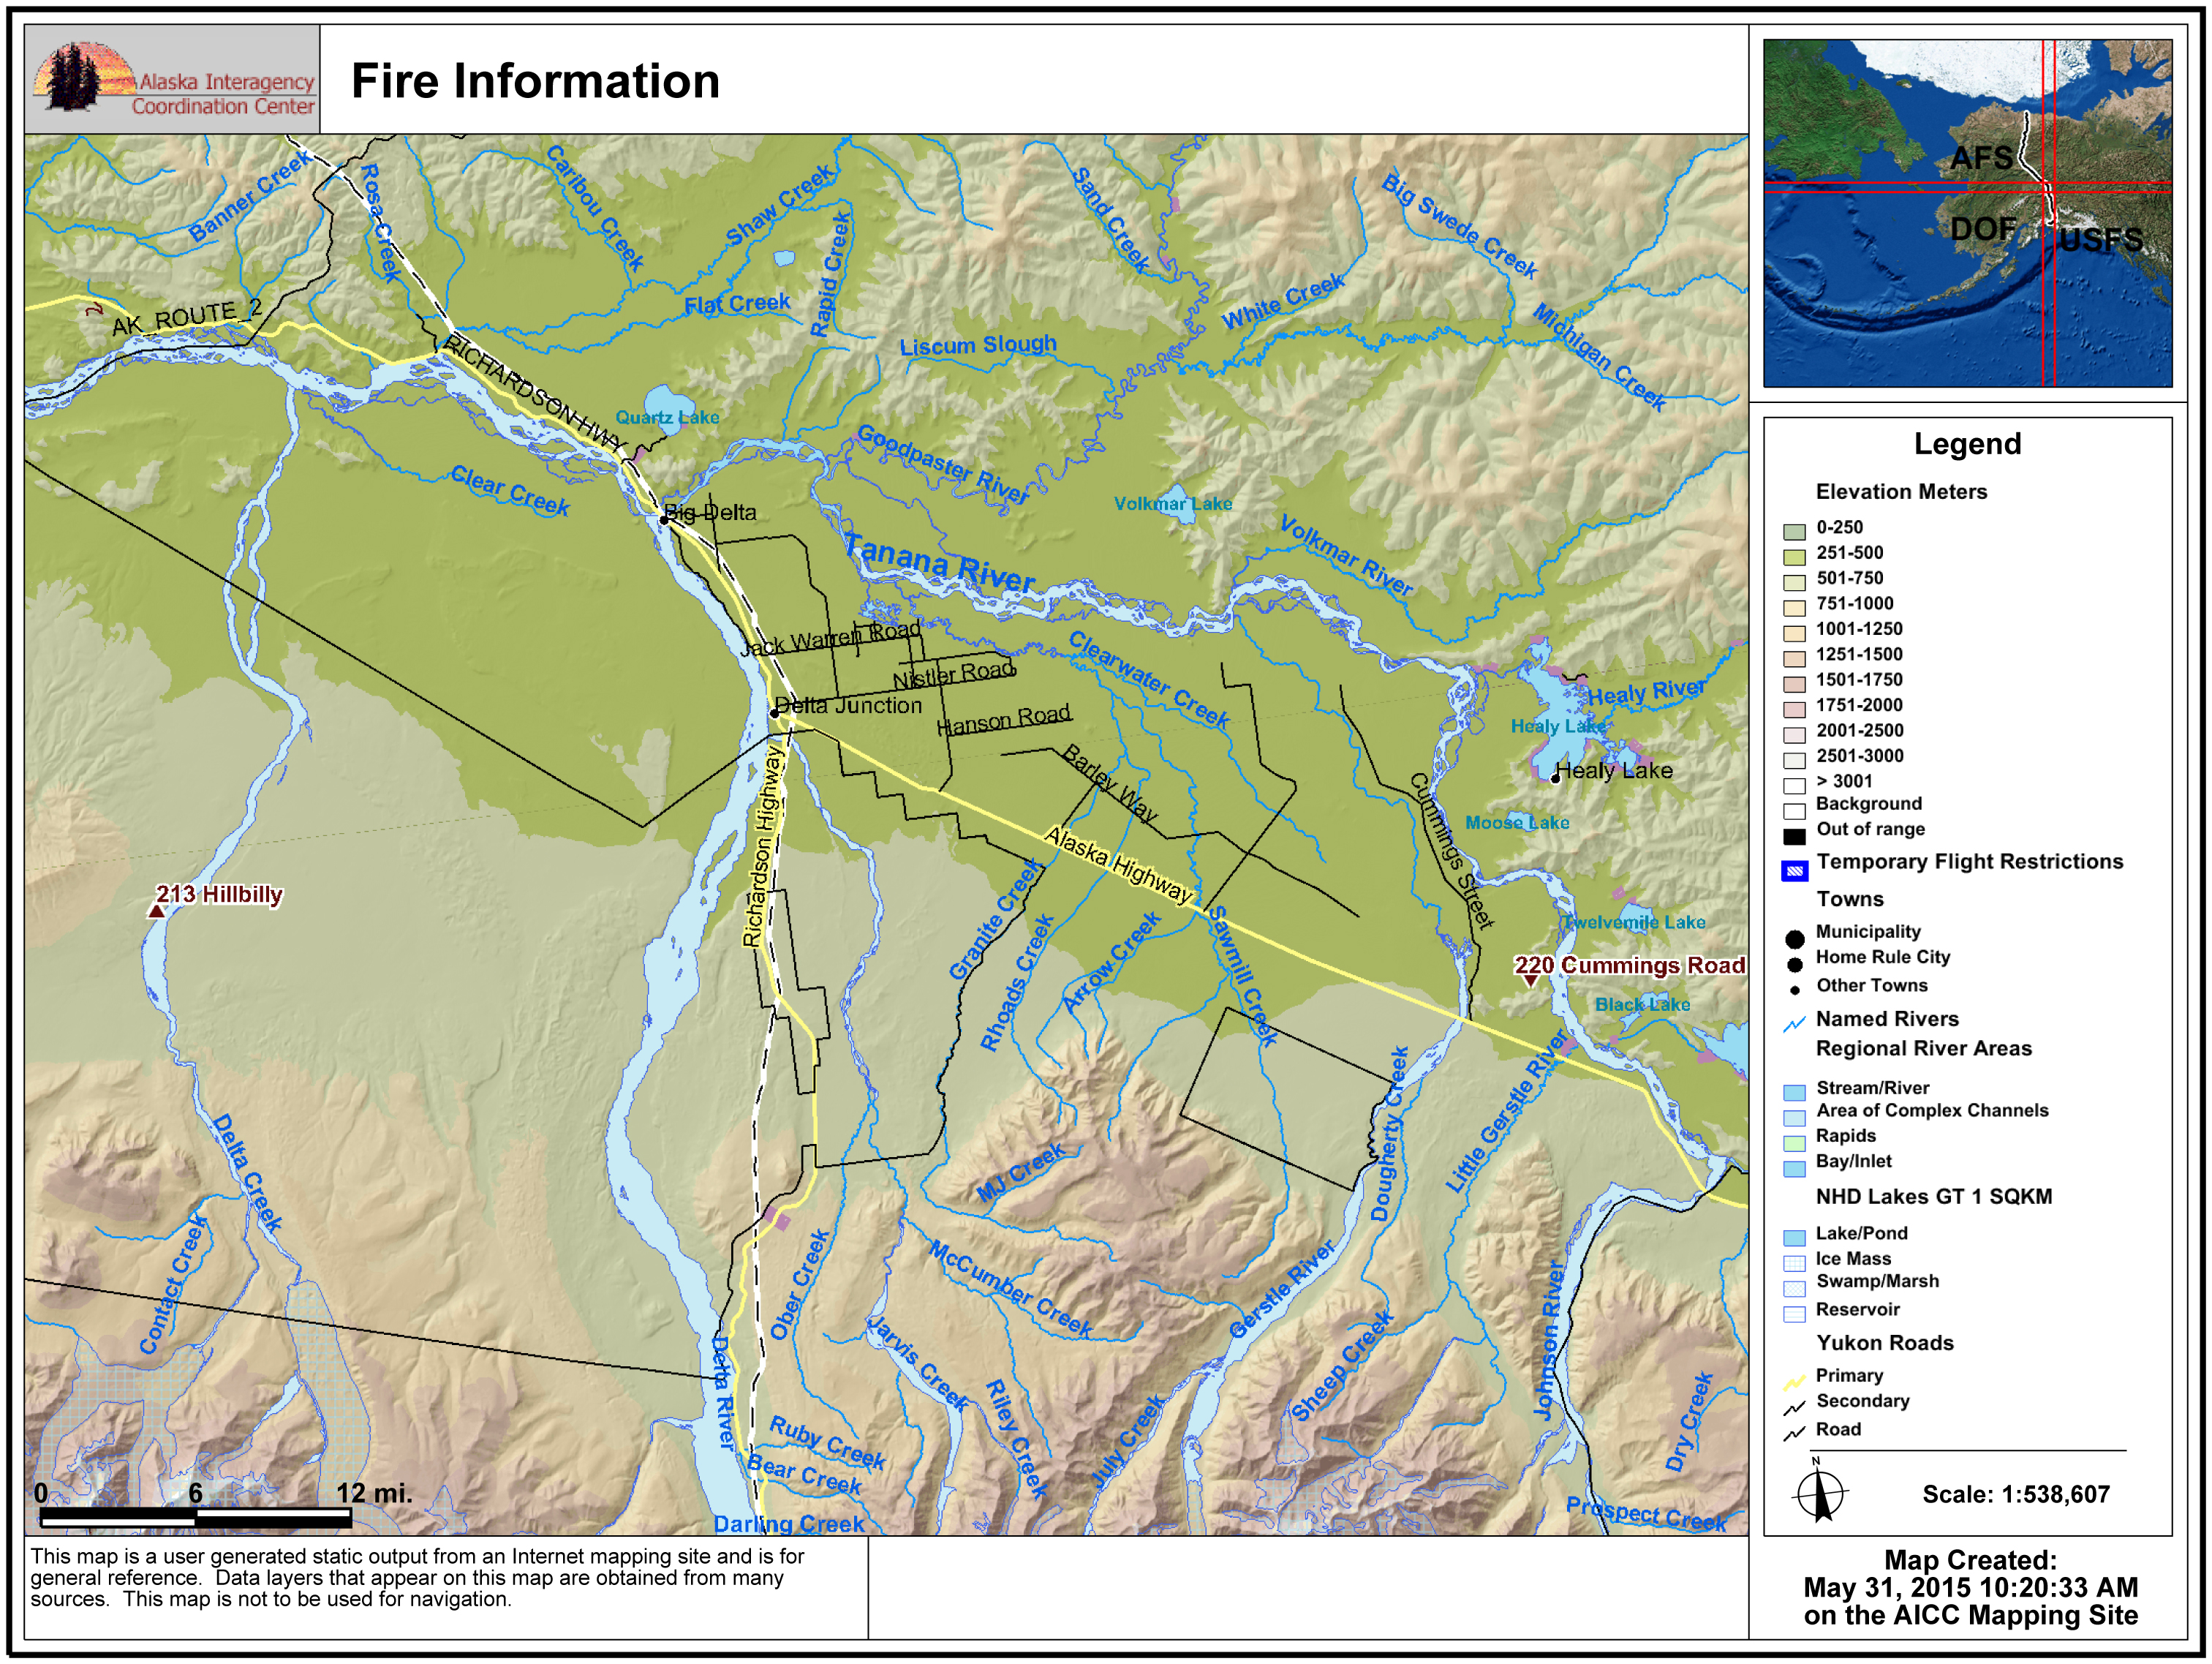 Wildland fire roundup for Sunday, May 31st | AK Fire Info